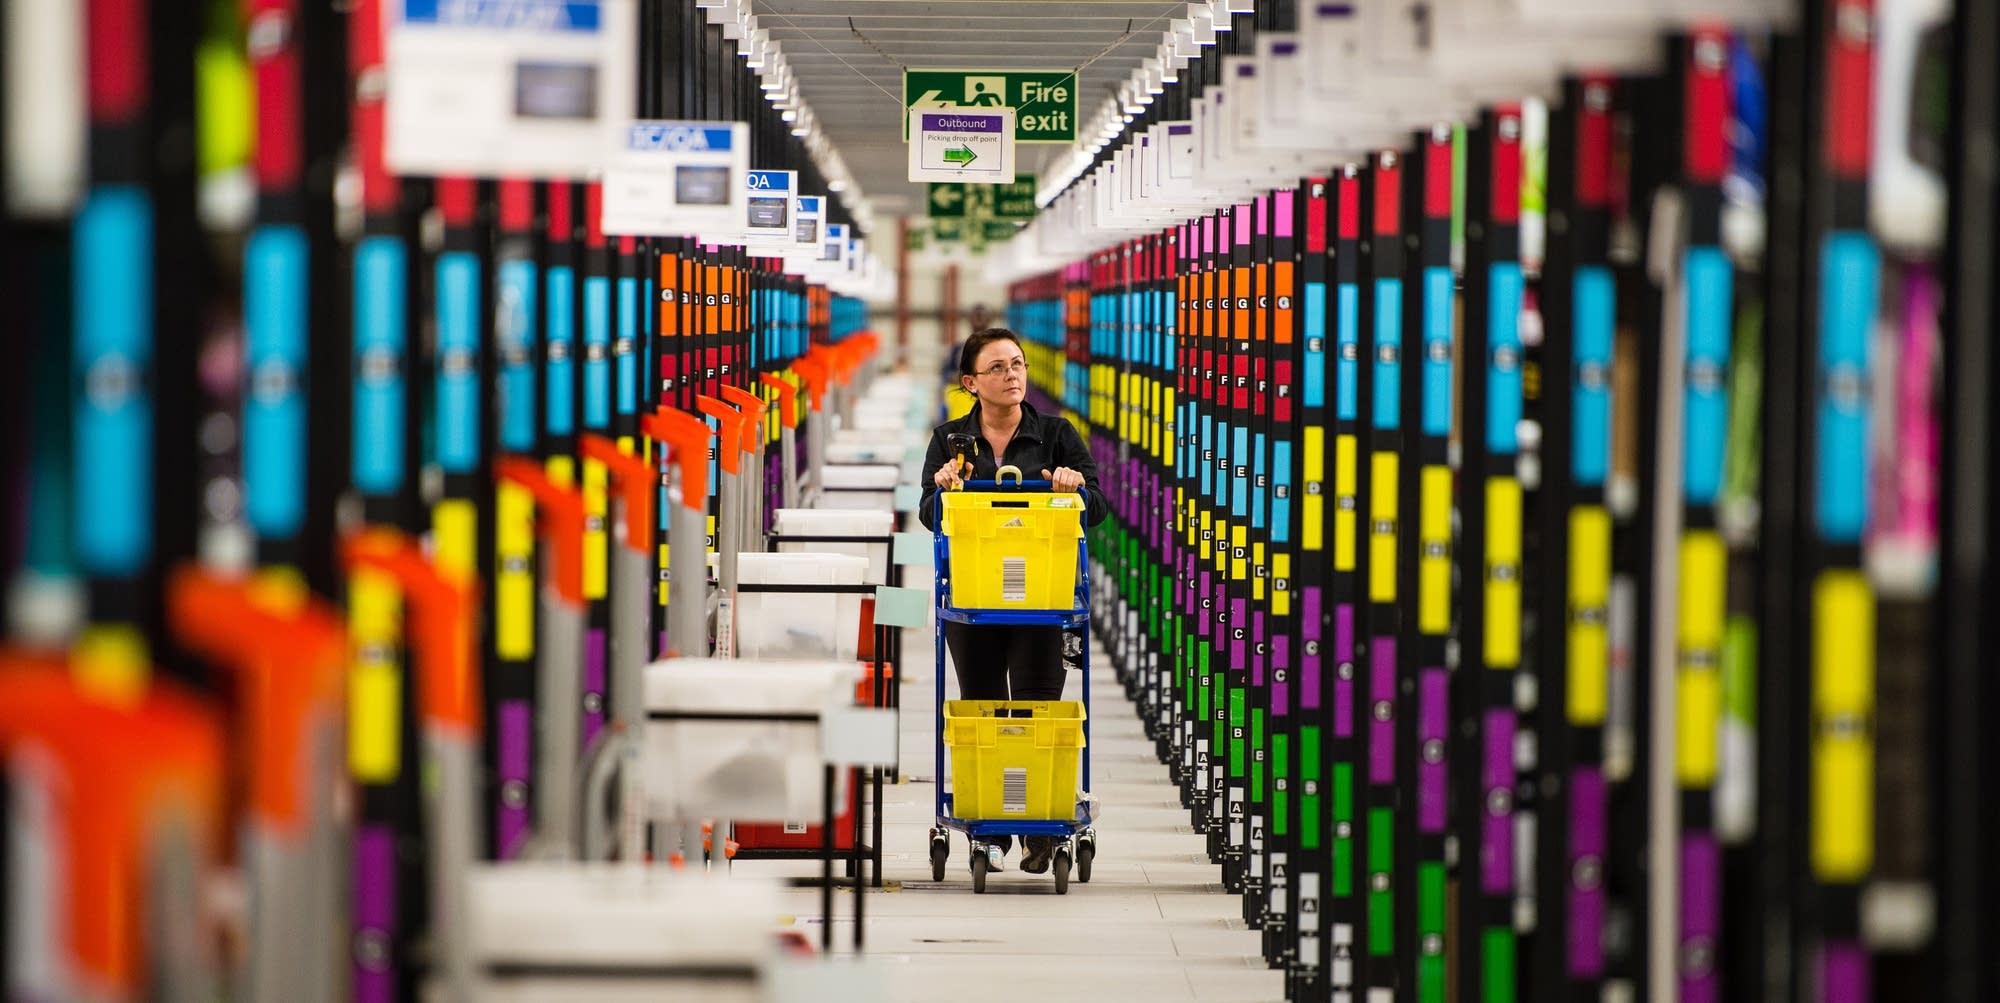 Amazon's Fulfillment Center in Hemel Hempstead